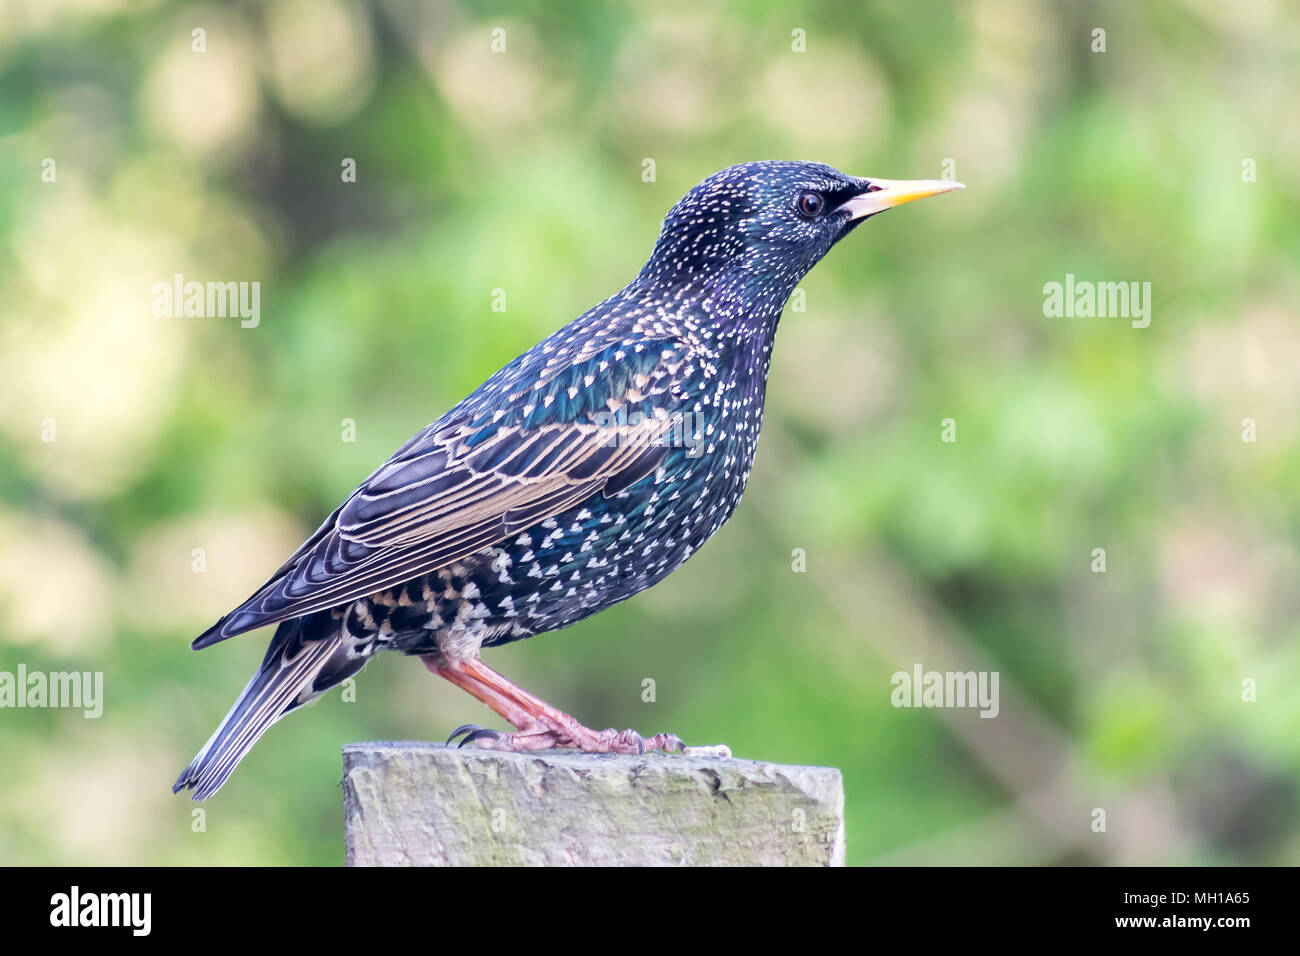 starling on a fence post - Stock Image